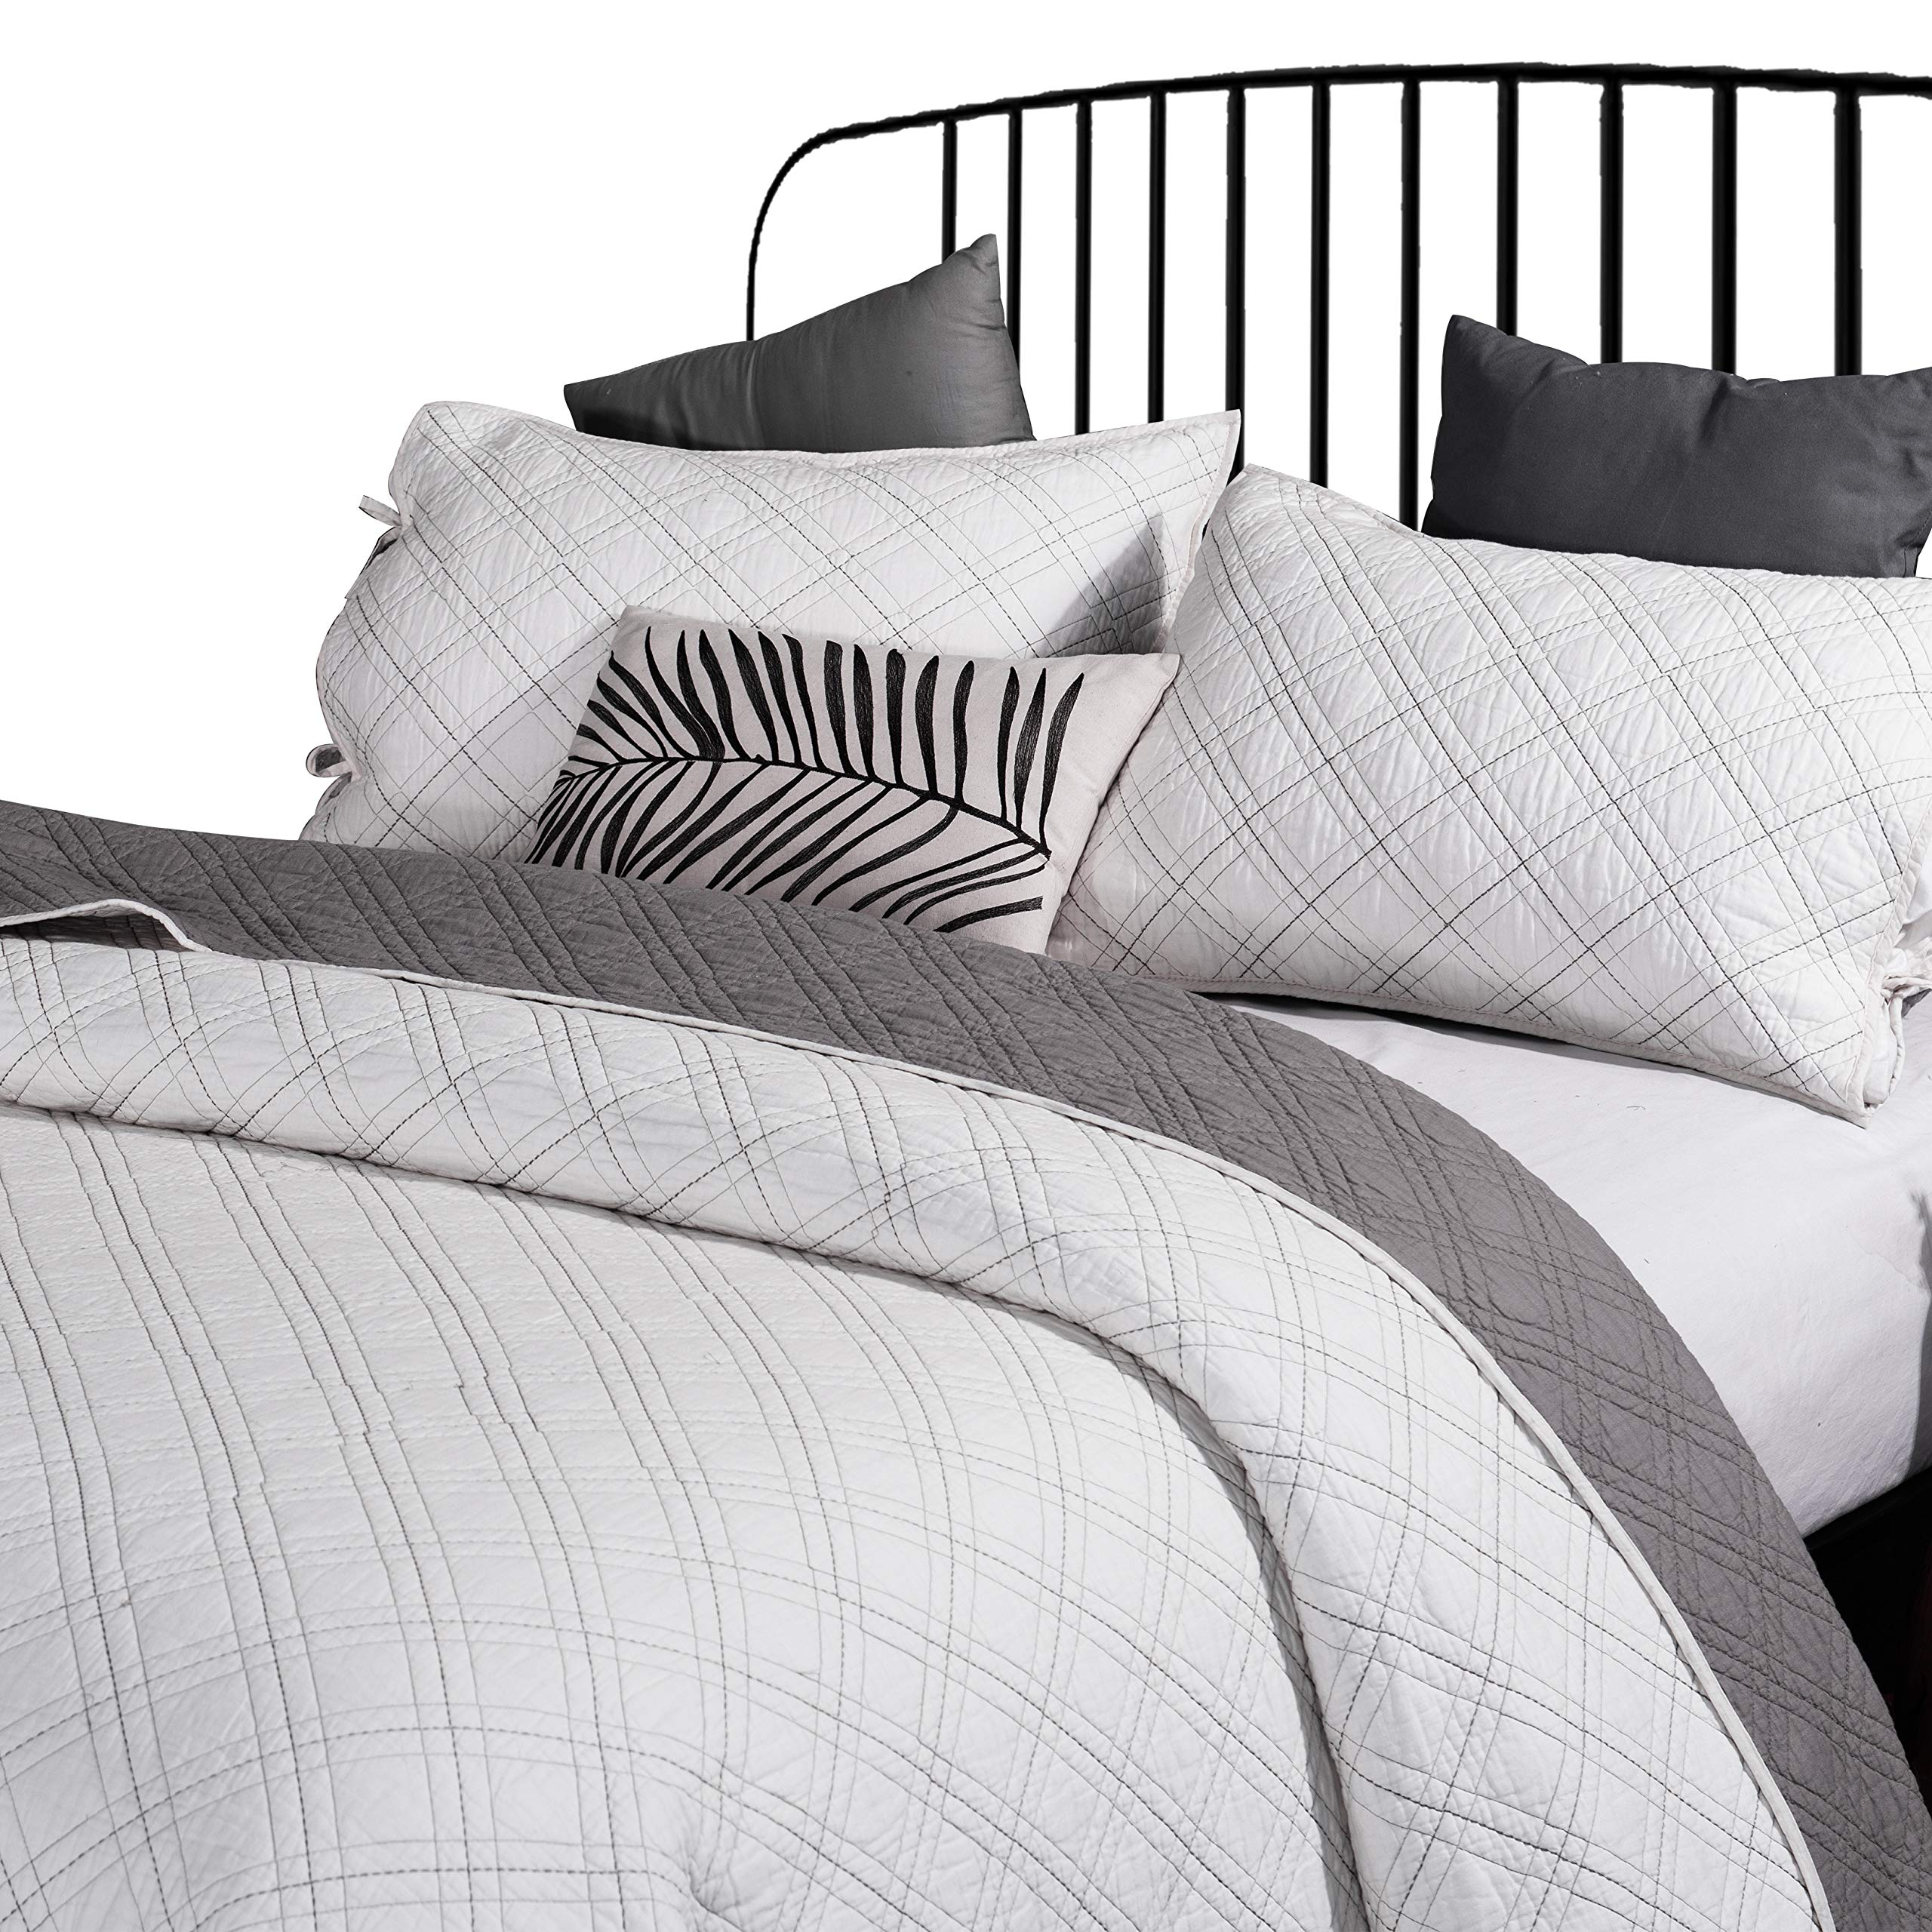 ANNA.Z HOME Seville, Mason, Coverlet, Quilt Collection, 100% Cotton 3 Piece Set. Trendy Embroidery & Quilting. Ivory and Gray Color. Reversible. Good for All Seasons (Ivory Mason, Queen Set)